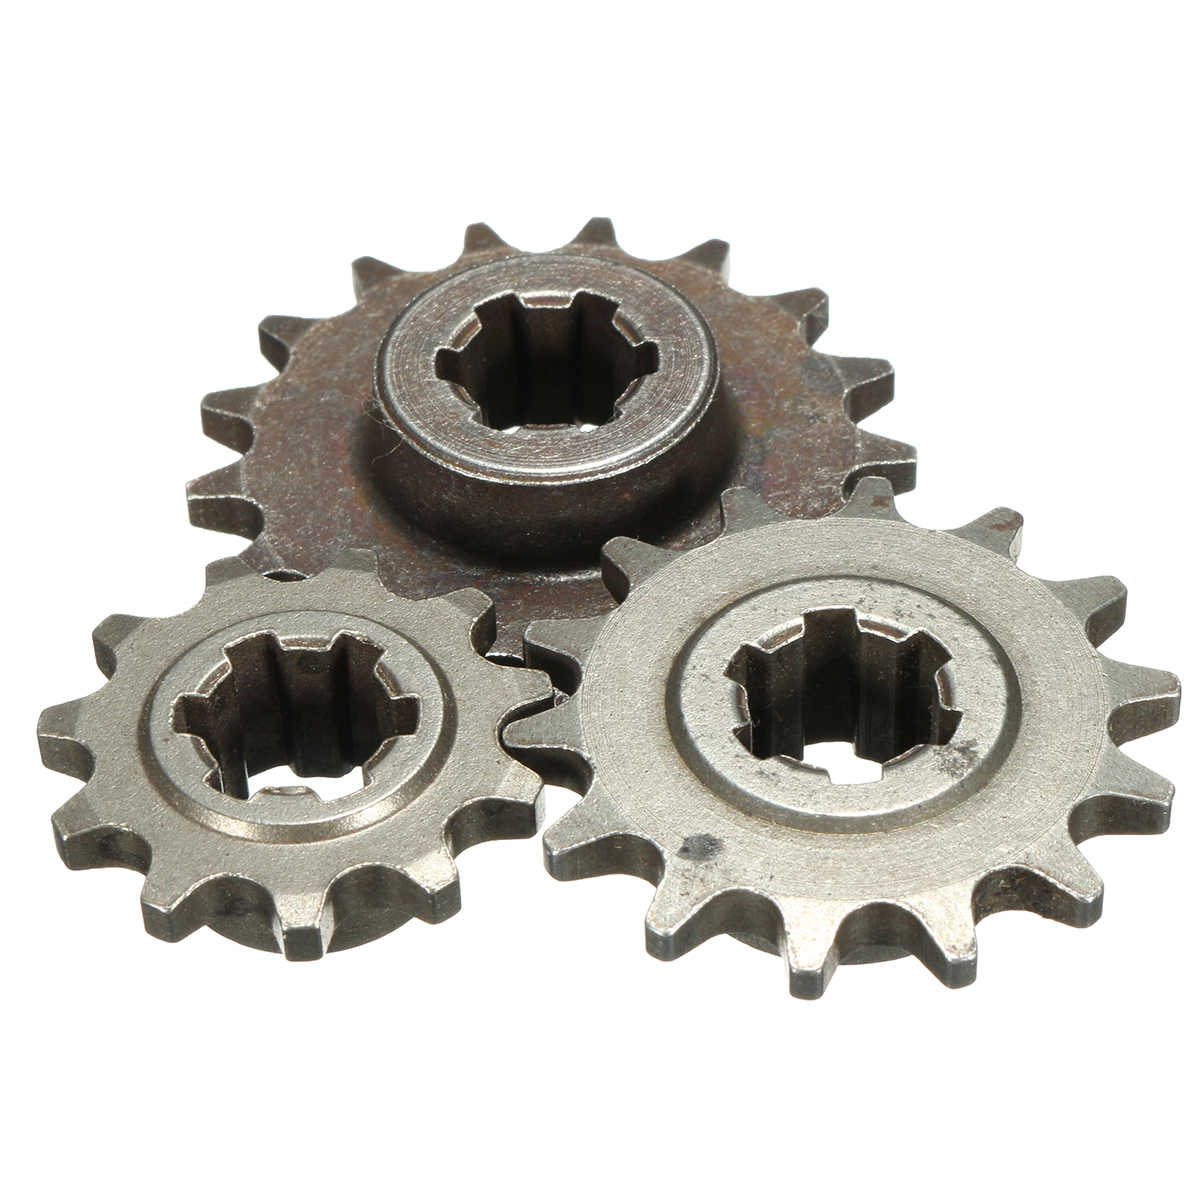 T8F 8 Mm 14/11/17 Gigi Depan Pinion Sprocket Chain COG Mini Moto Dirt Bike